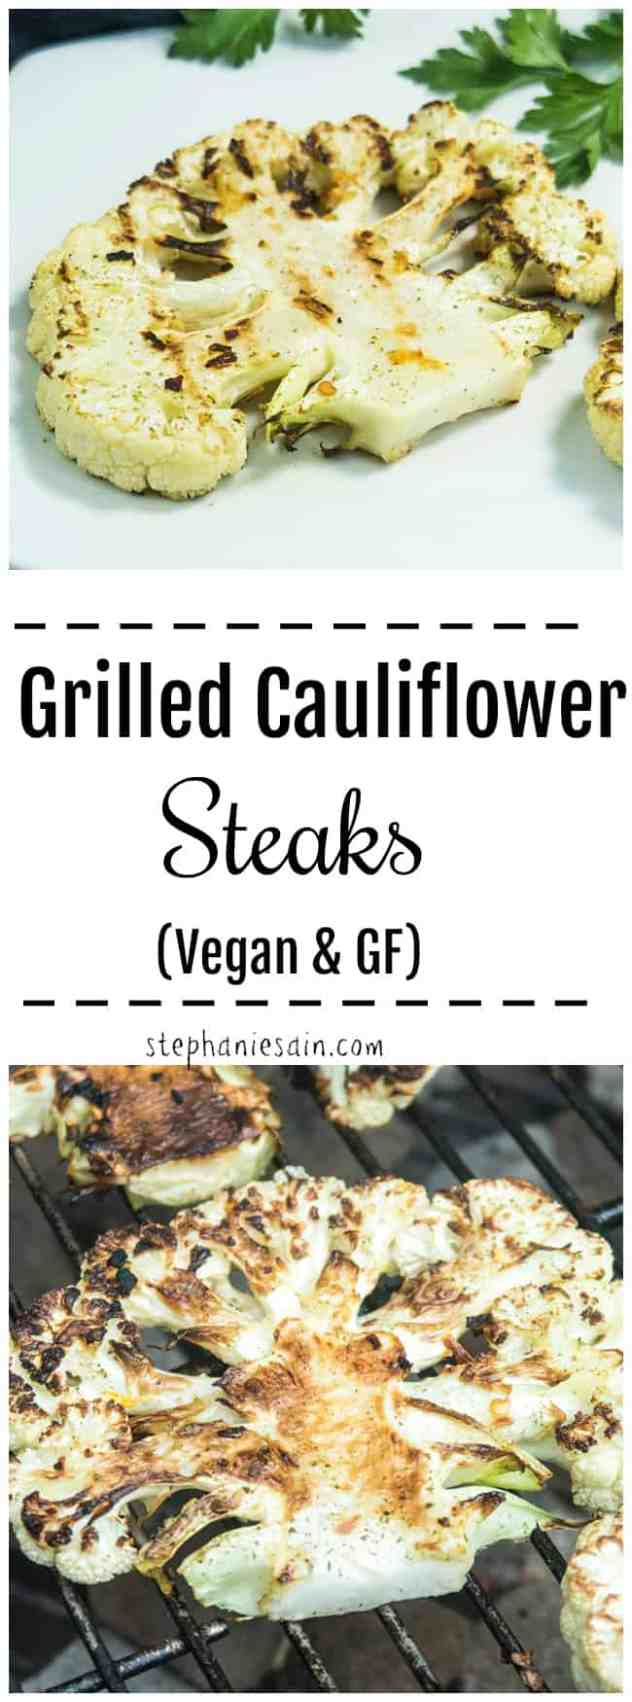 These Grilled Cauliflower Steaks are the perfect Vegan option for grilling out steaks. Super Easy to prepare and can be served lightly seasoned right off the grill or with BBQ sauce is really good. Great since you can prep these ahead and have ready when you're set to grill. Vegan & Gluten Free.